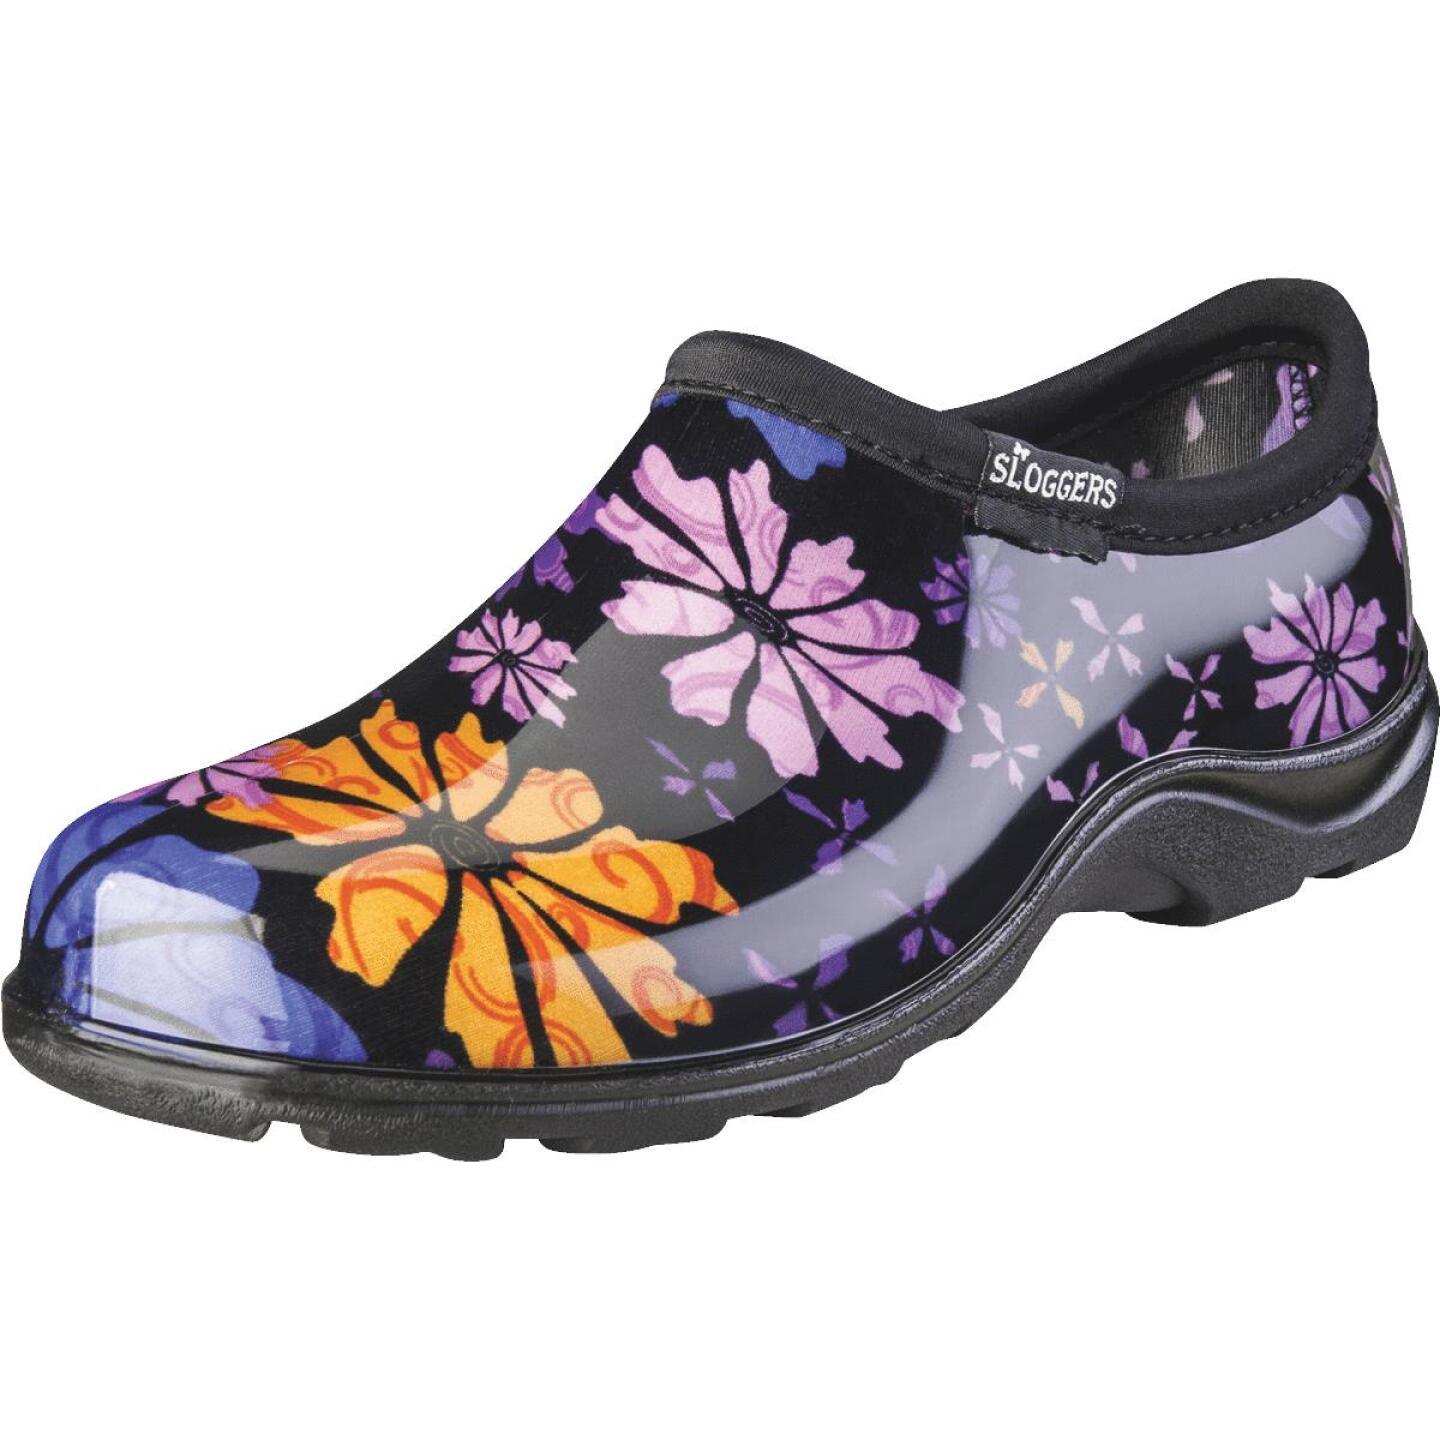 Sloggers Women's Size 9 Black w/Flower Design Garden Shoe Image 1